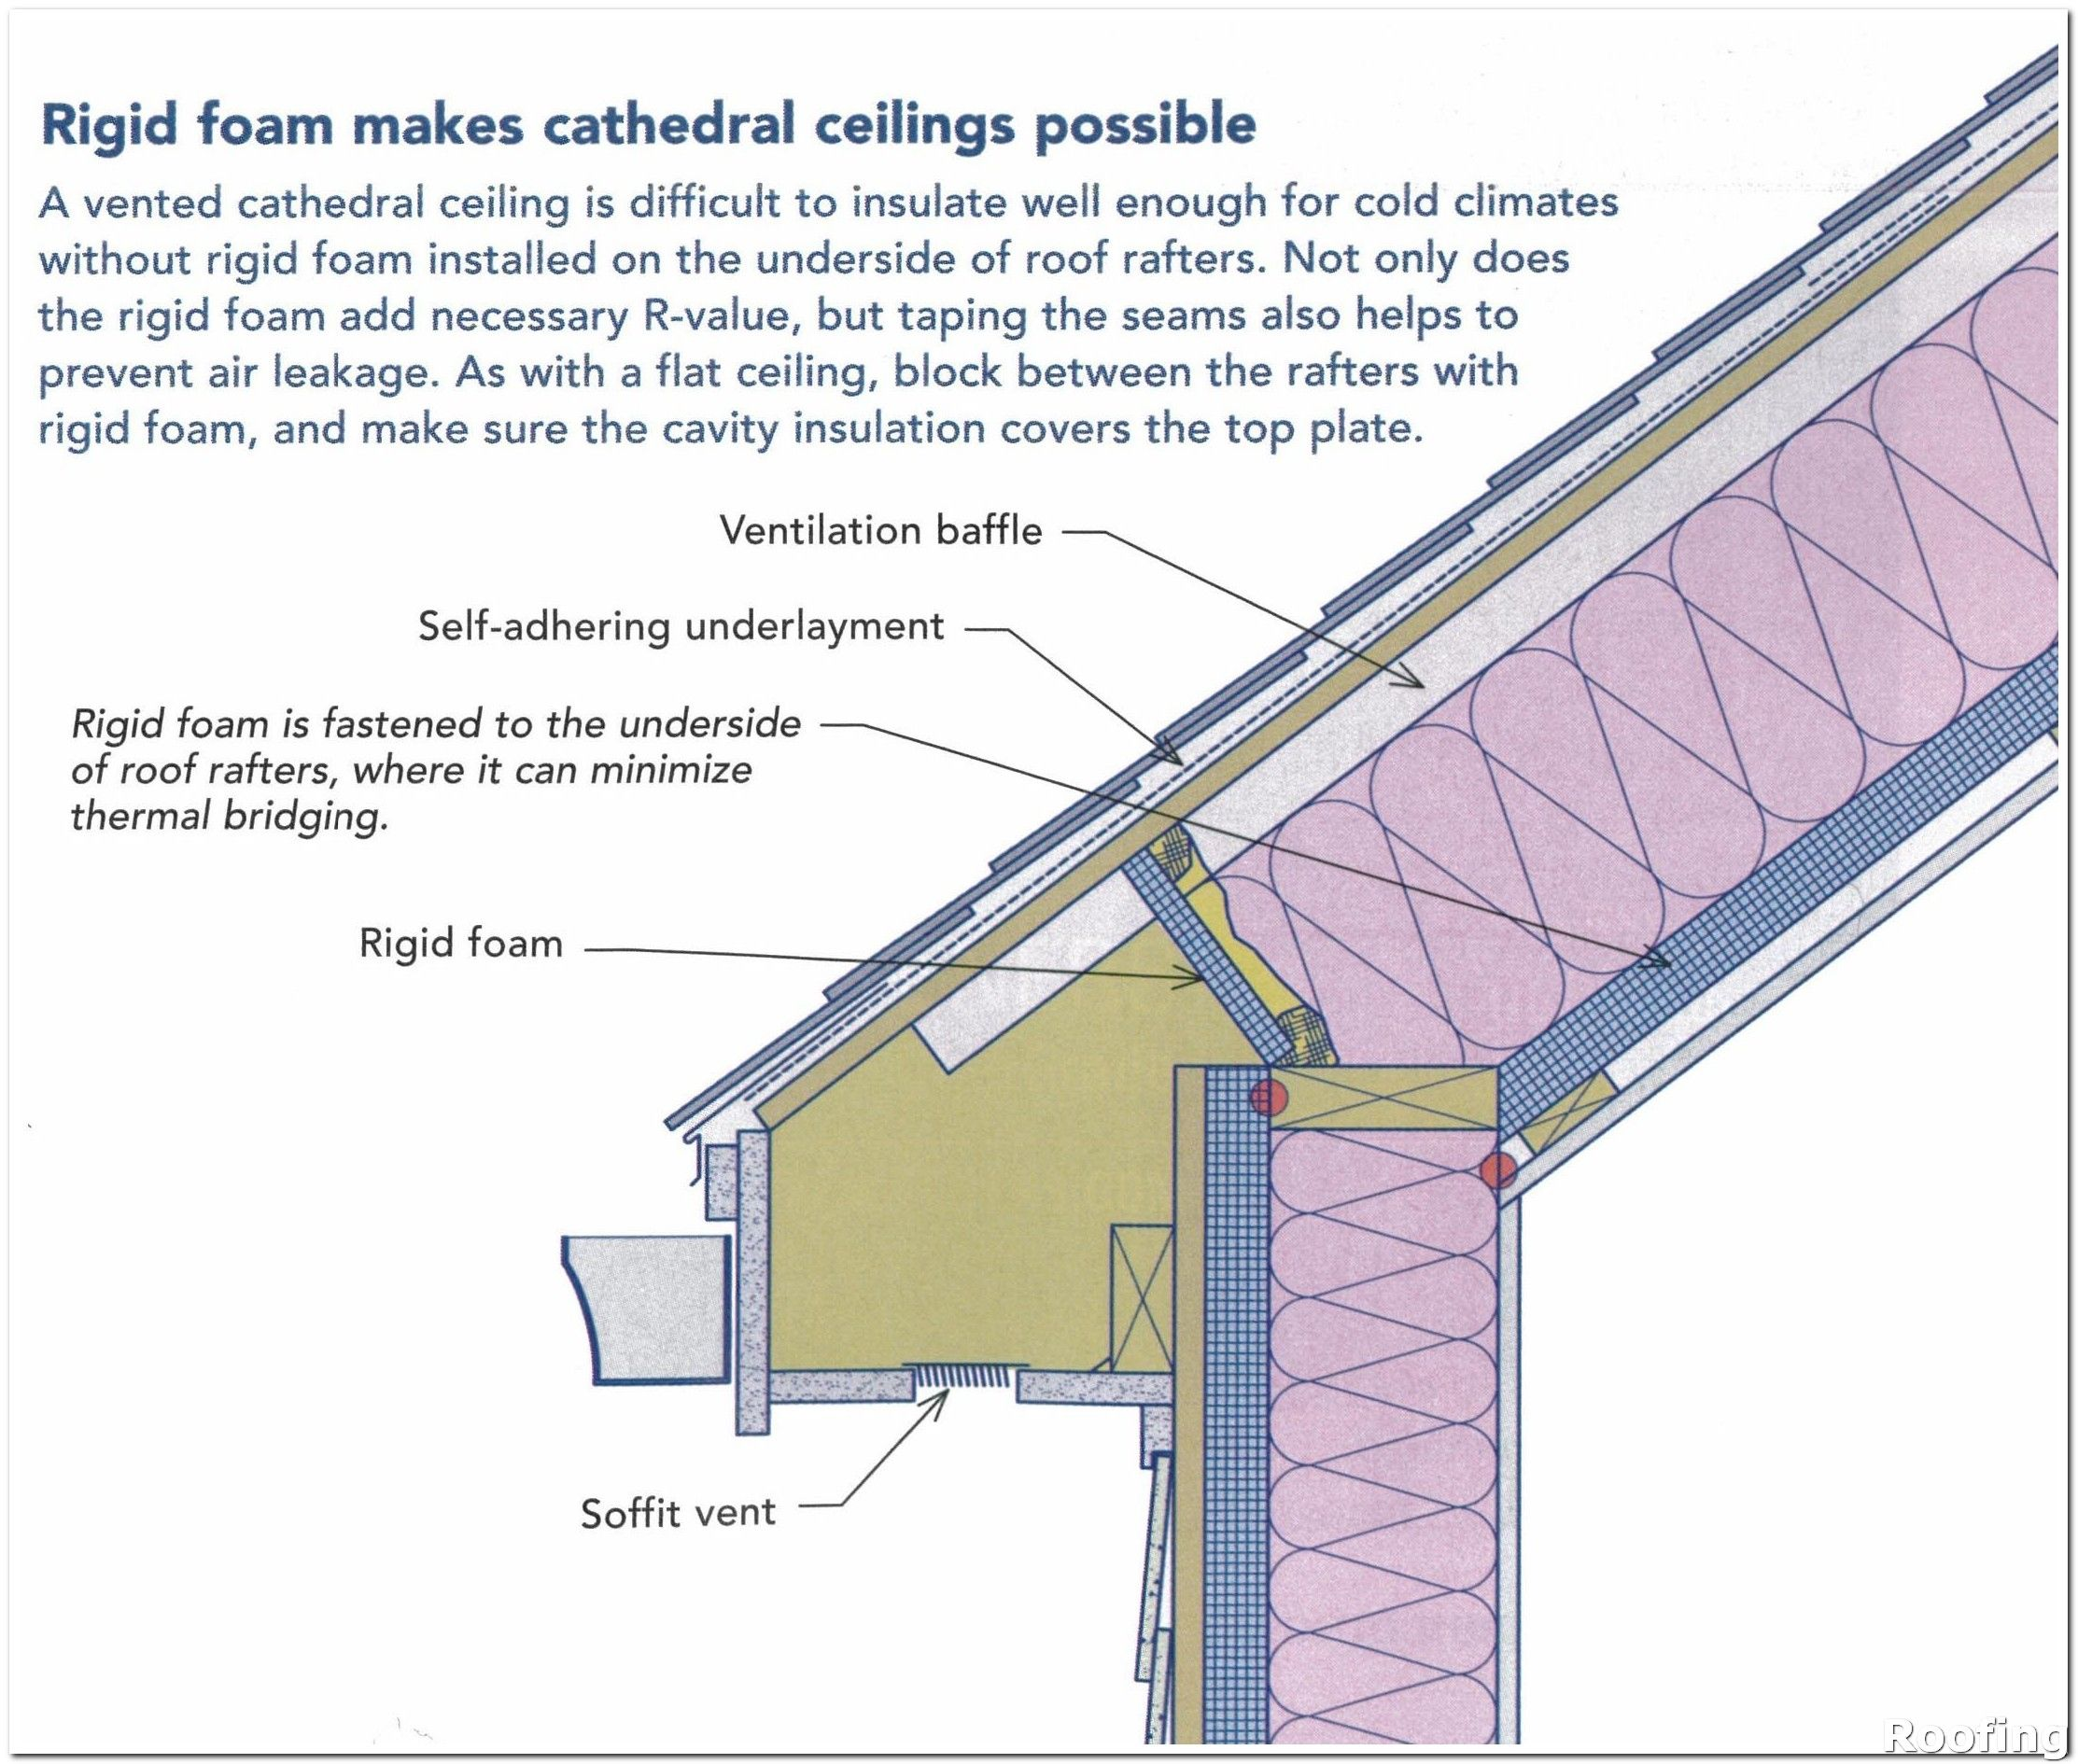 Roofing Architecture It S Not Easy To Choose Between Roofing Contractors But Asking For A List Of Reference Rigid Insulation Cool Roof Cathedral Ceiling